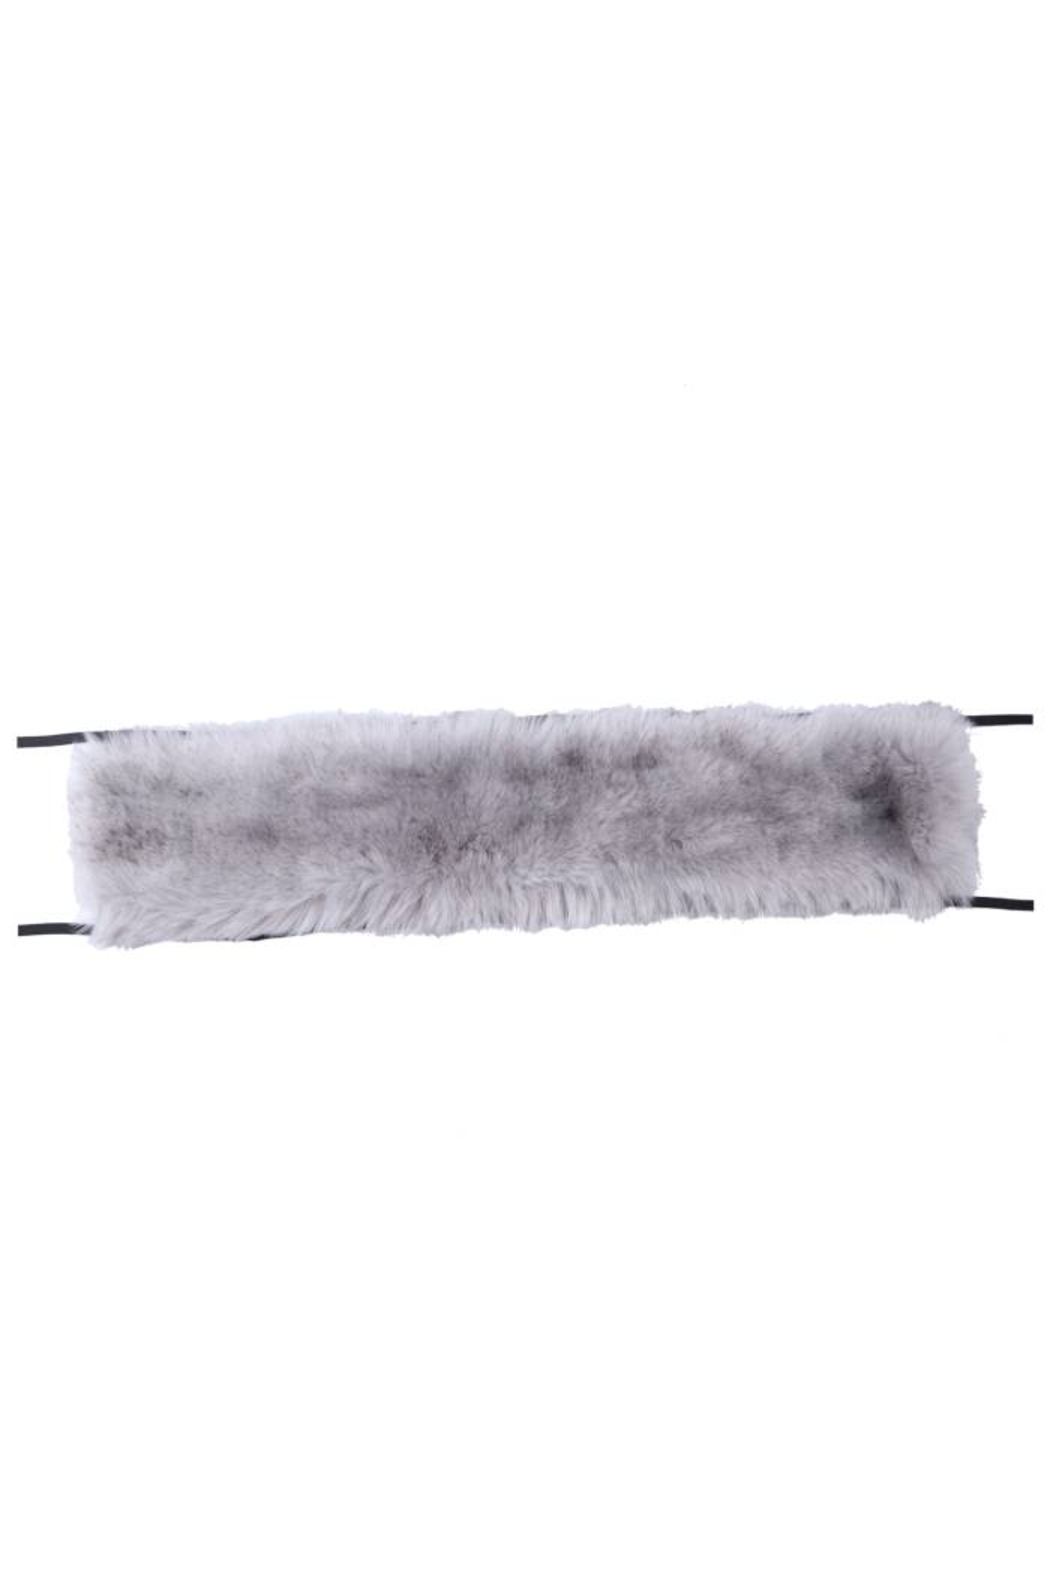 7AM Enfant 7 AM Enfant Faux Fur Marquee Tundra Canopy For Baby Carrier Or Stroller - Side Cropped Image